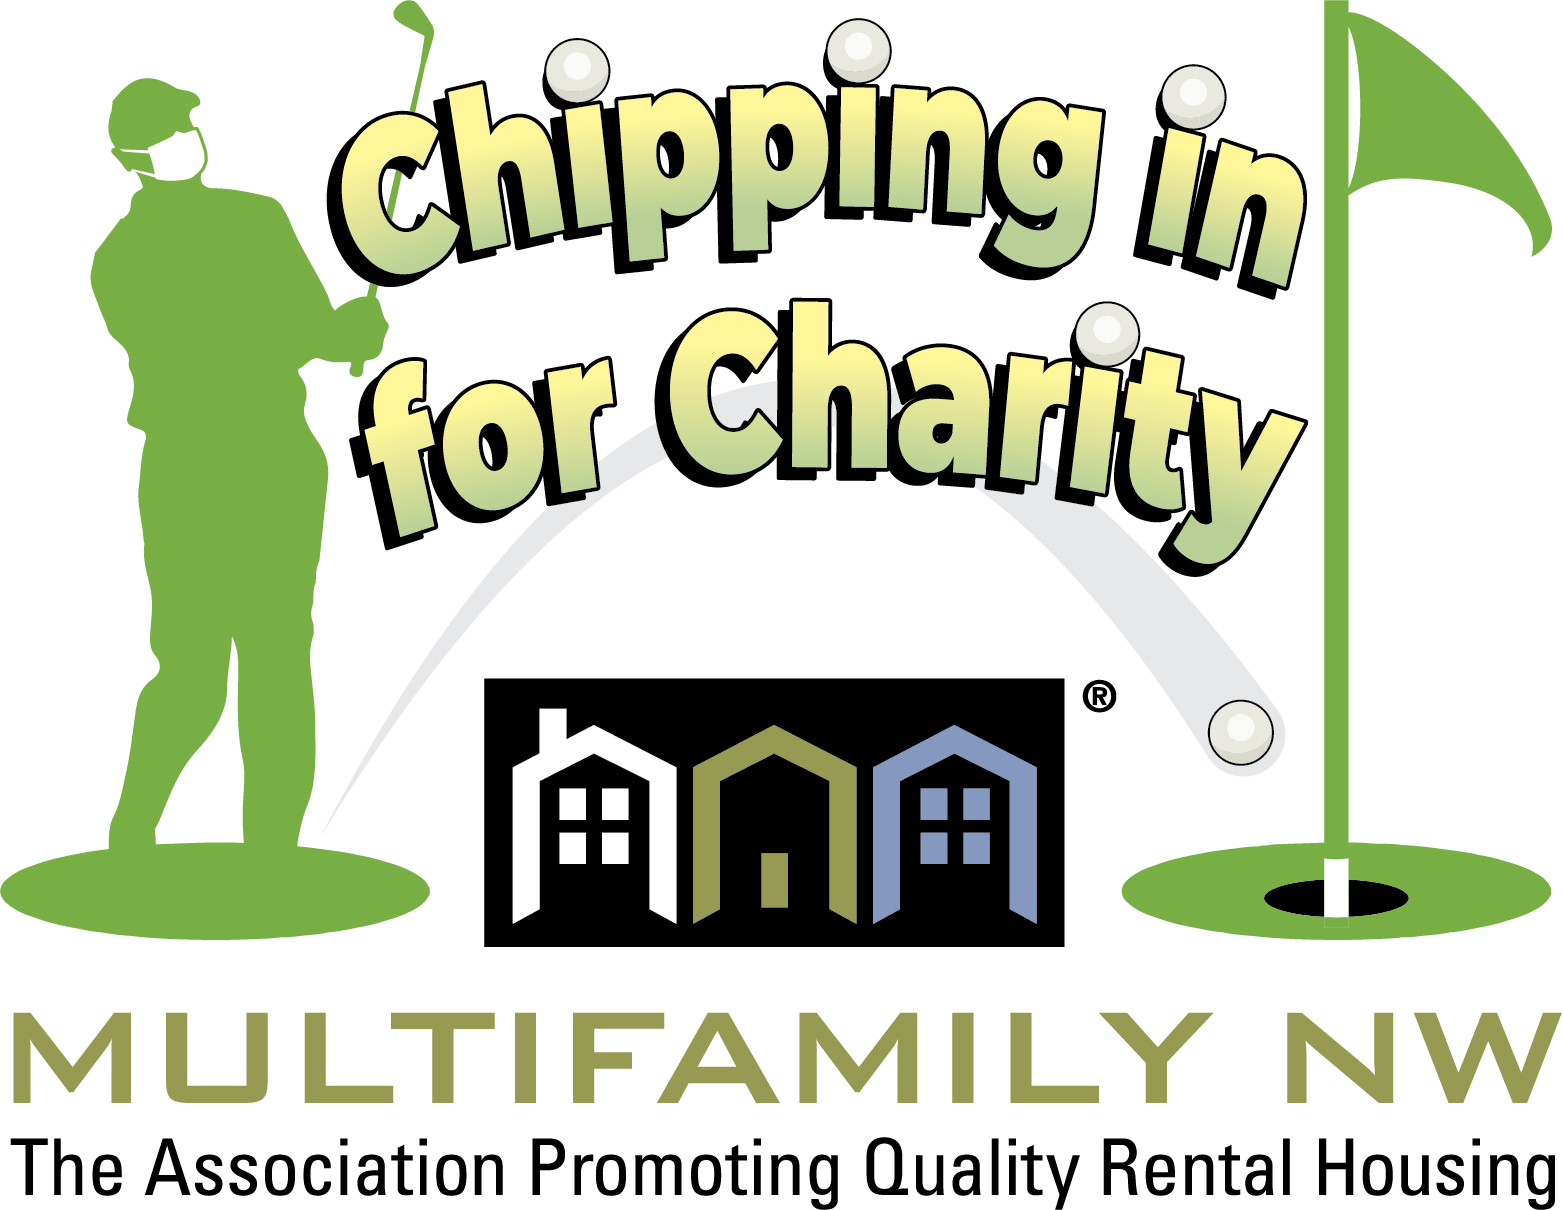 Chipping In for Charity logo